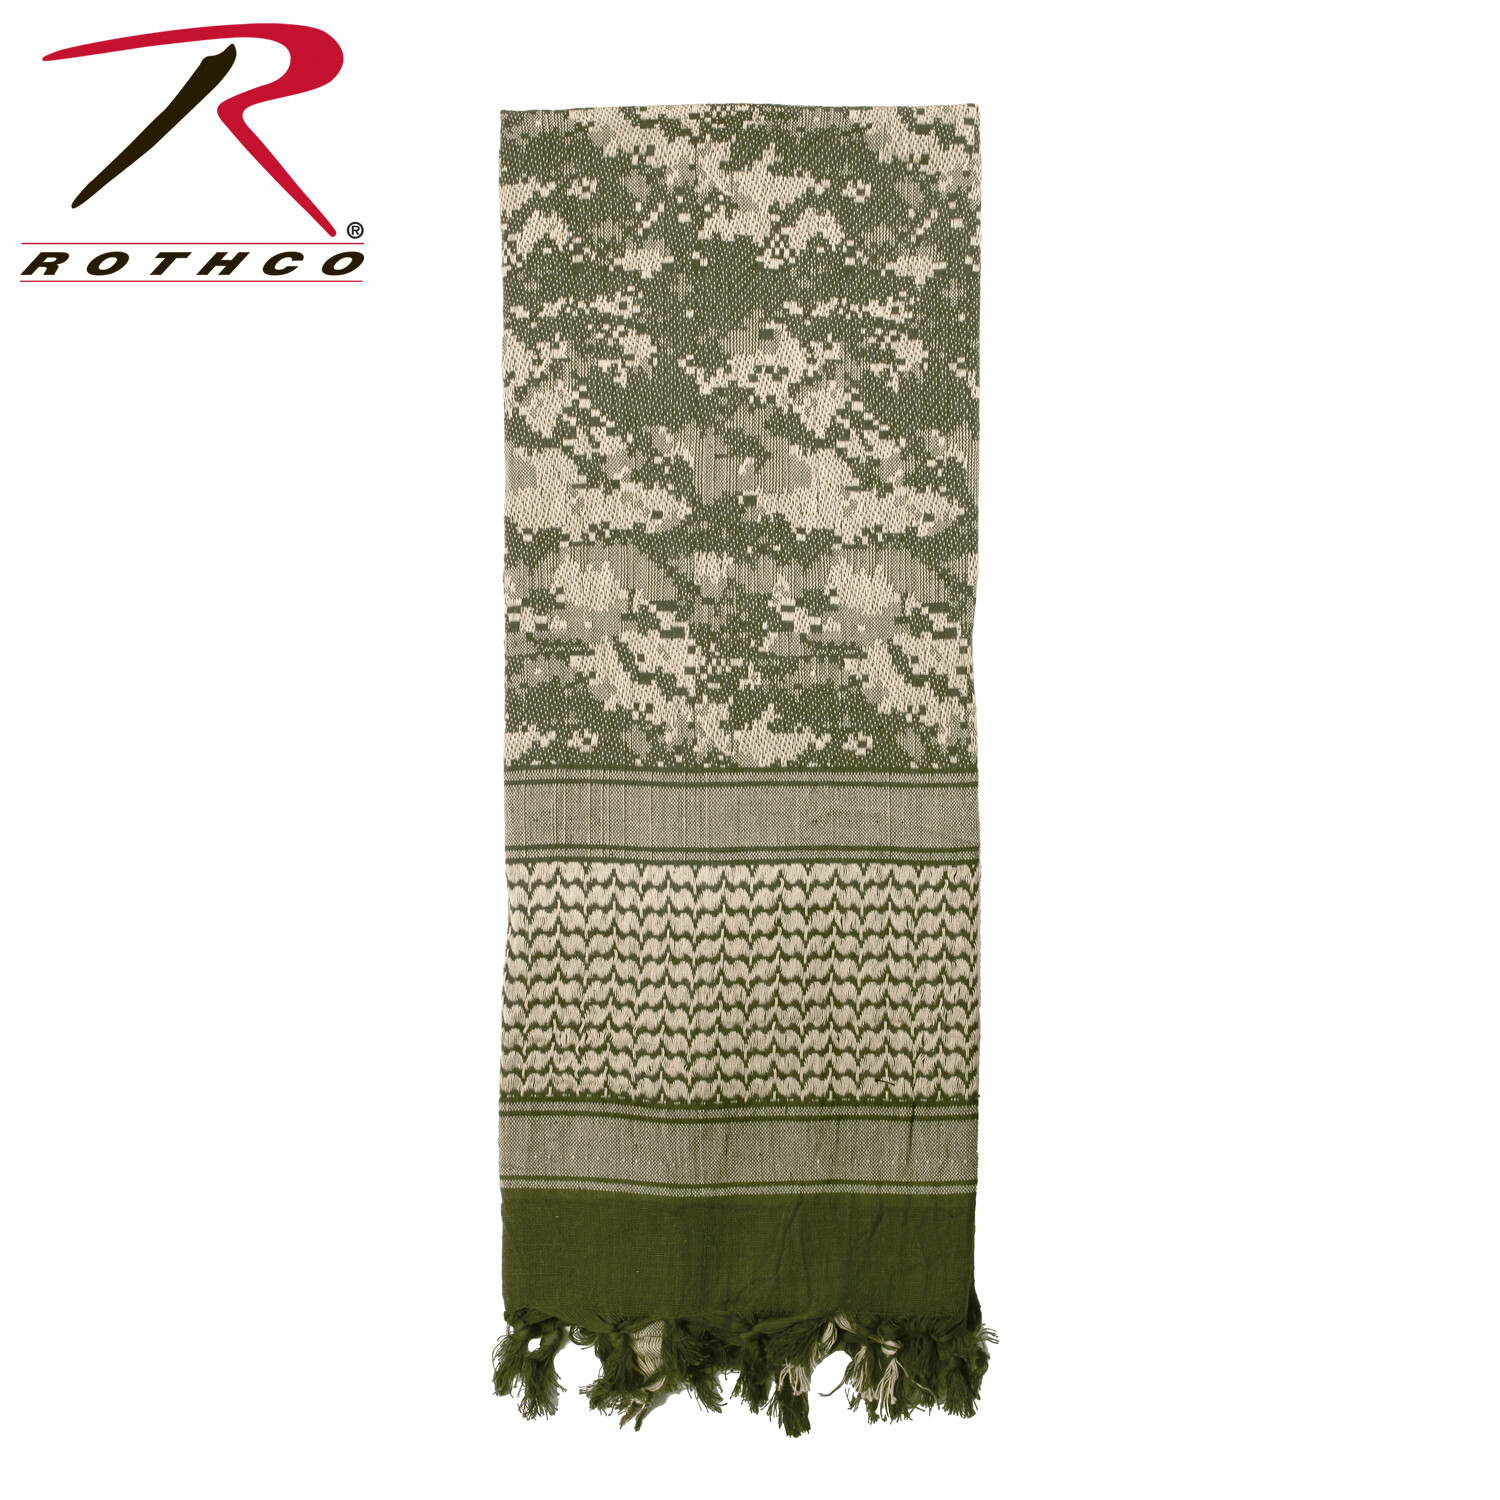 Rothco, 88537, A.C.U. Digital Camo Deluxe Shemagh Tactical Desert Scarf